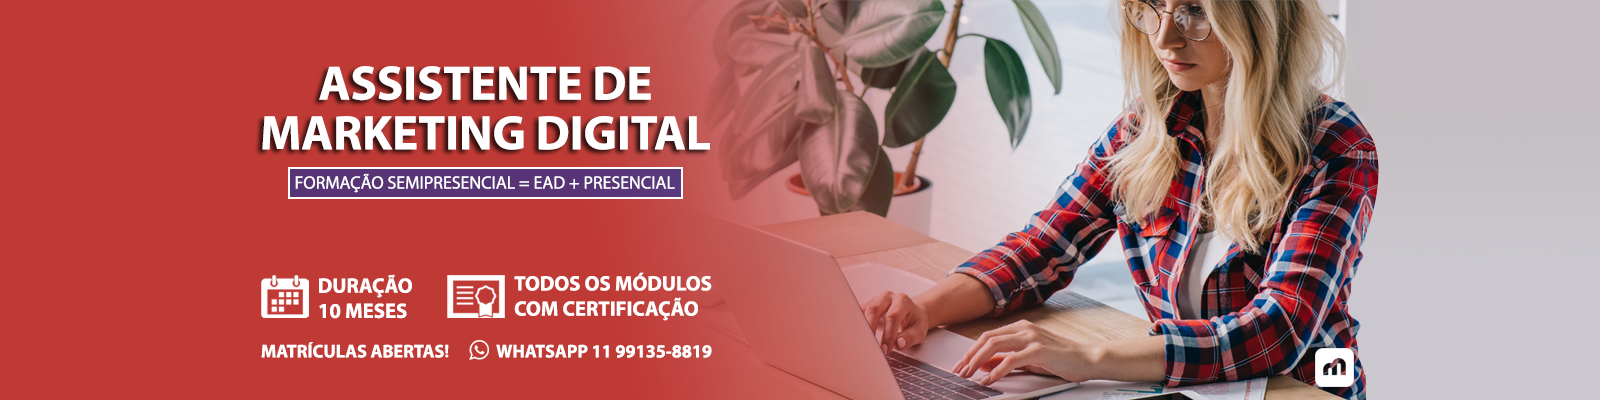 Curso de Marketing Digital Microlins Mogi das Cruzes